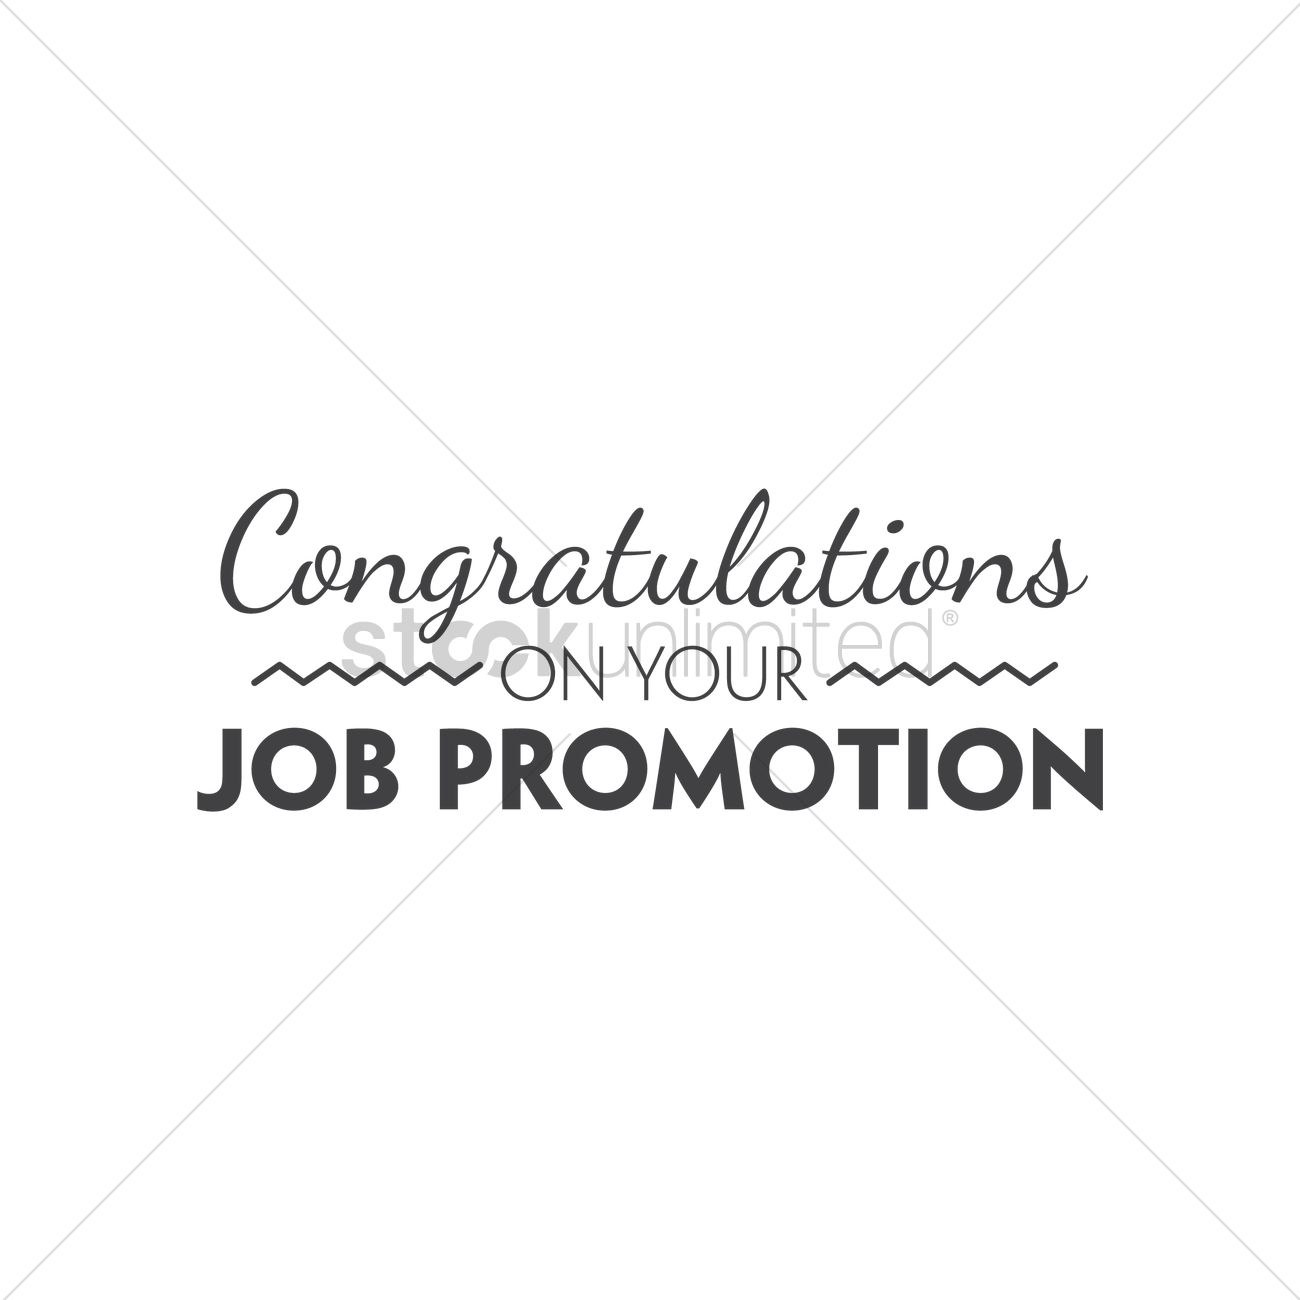 congratulations on your job promotion vector image  congratulations on your job promotion vector graphic